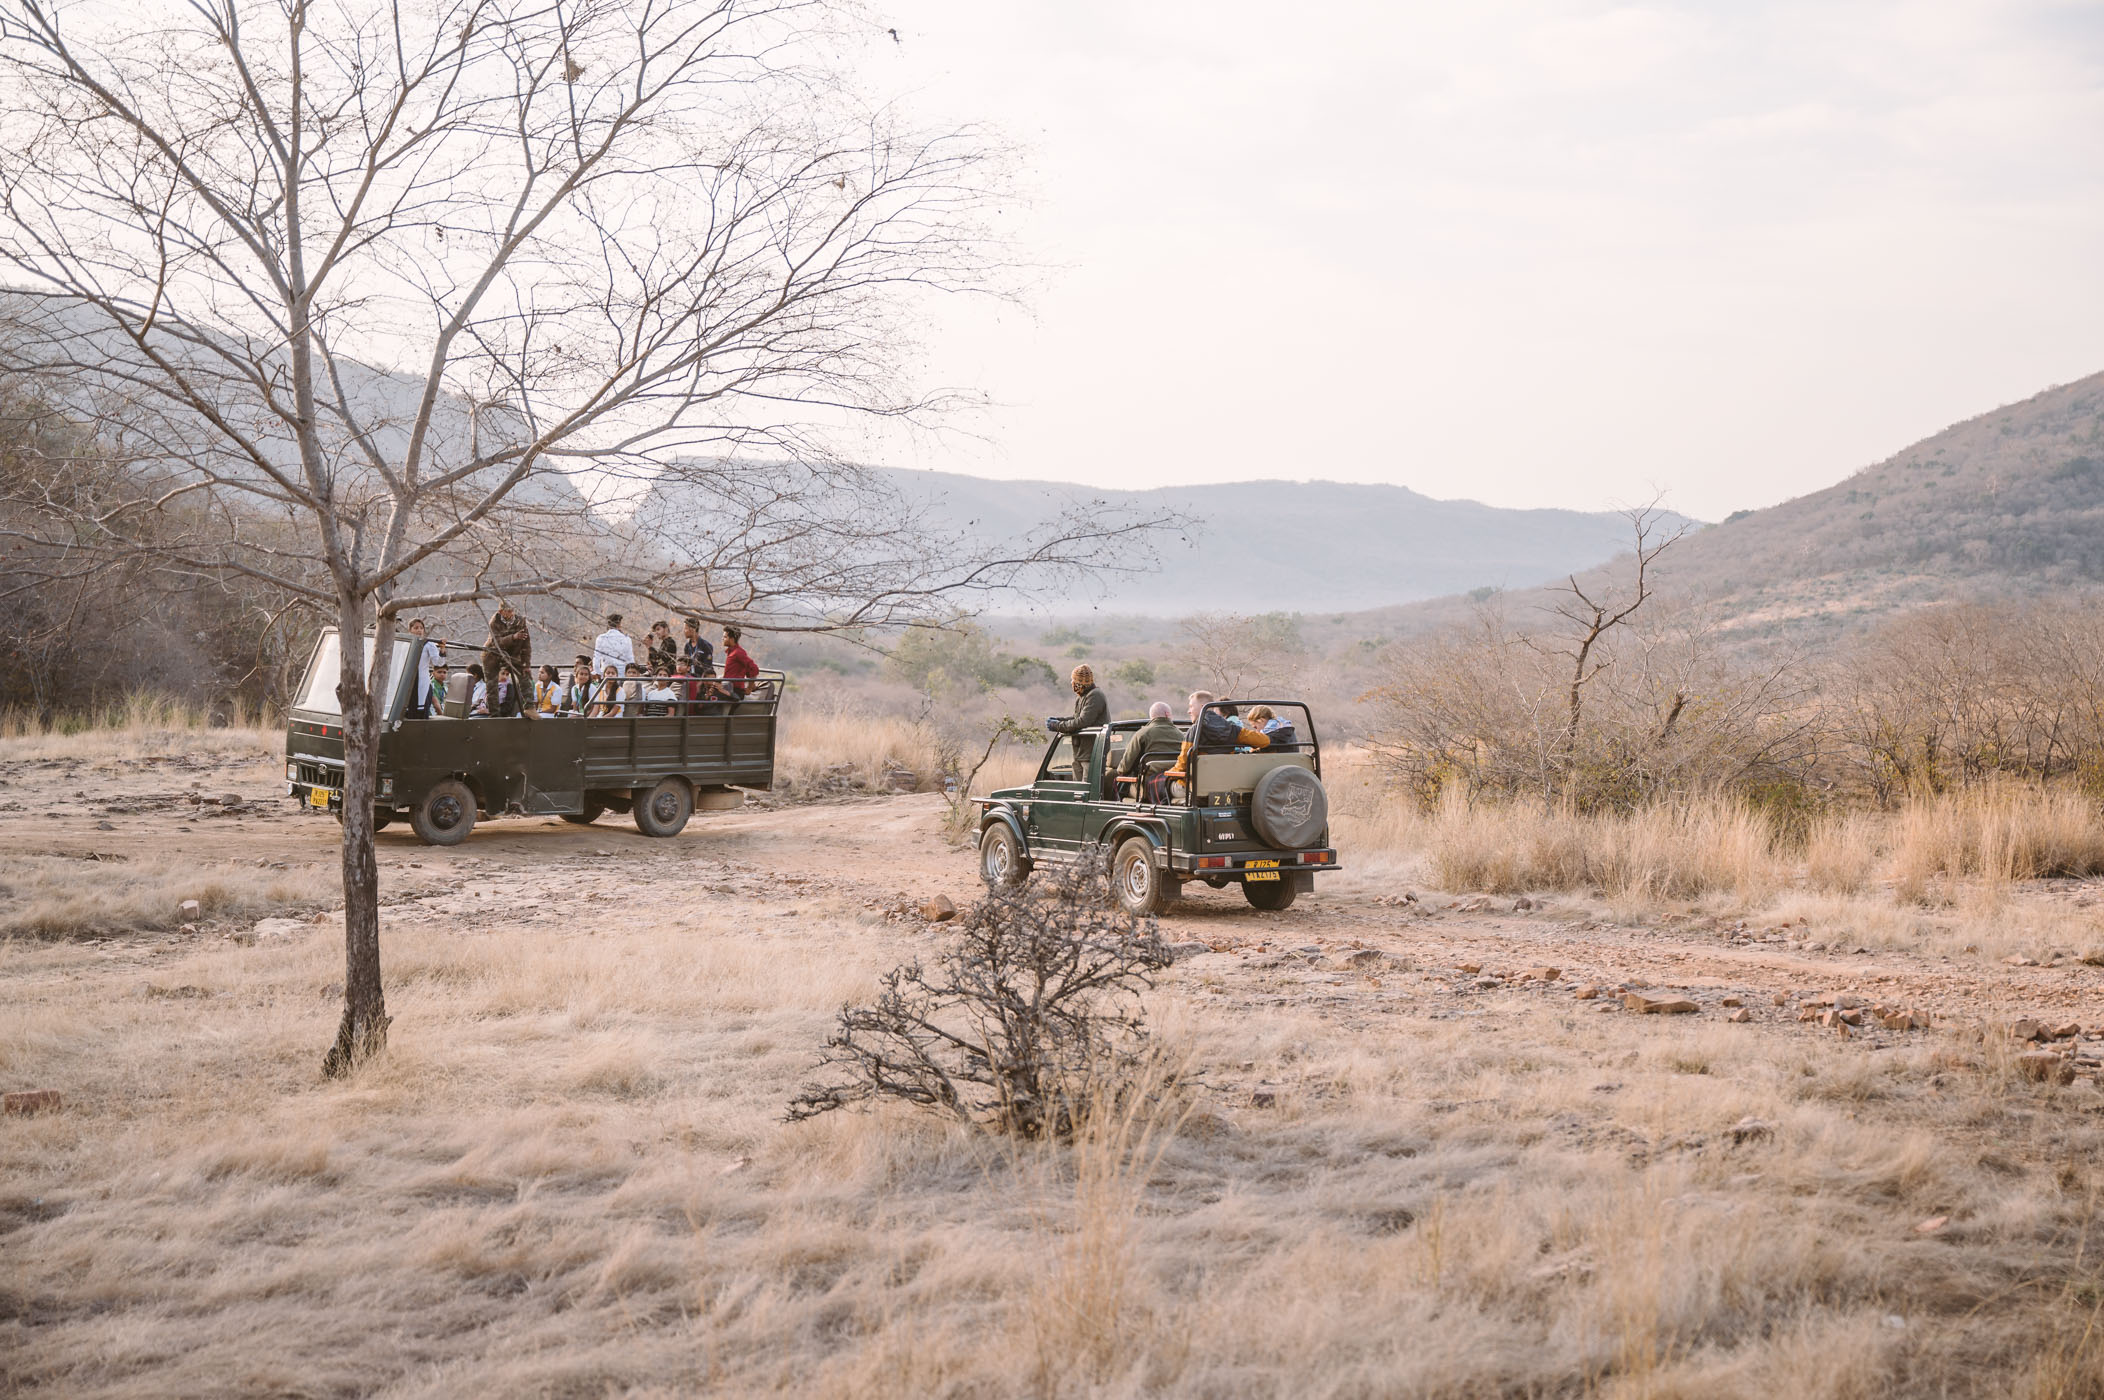 Canters vs. Gypsies in Ranthambore National Park